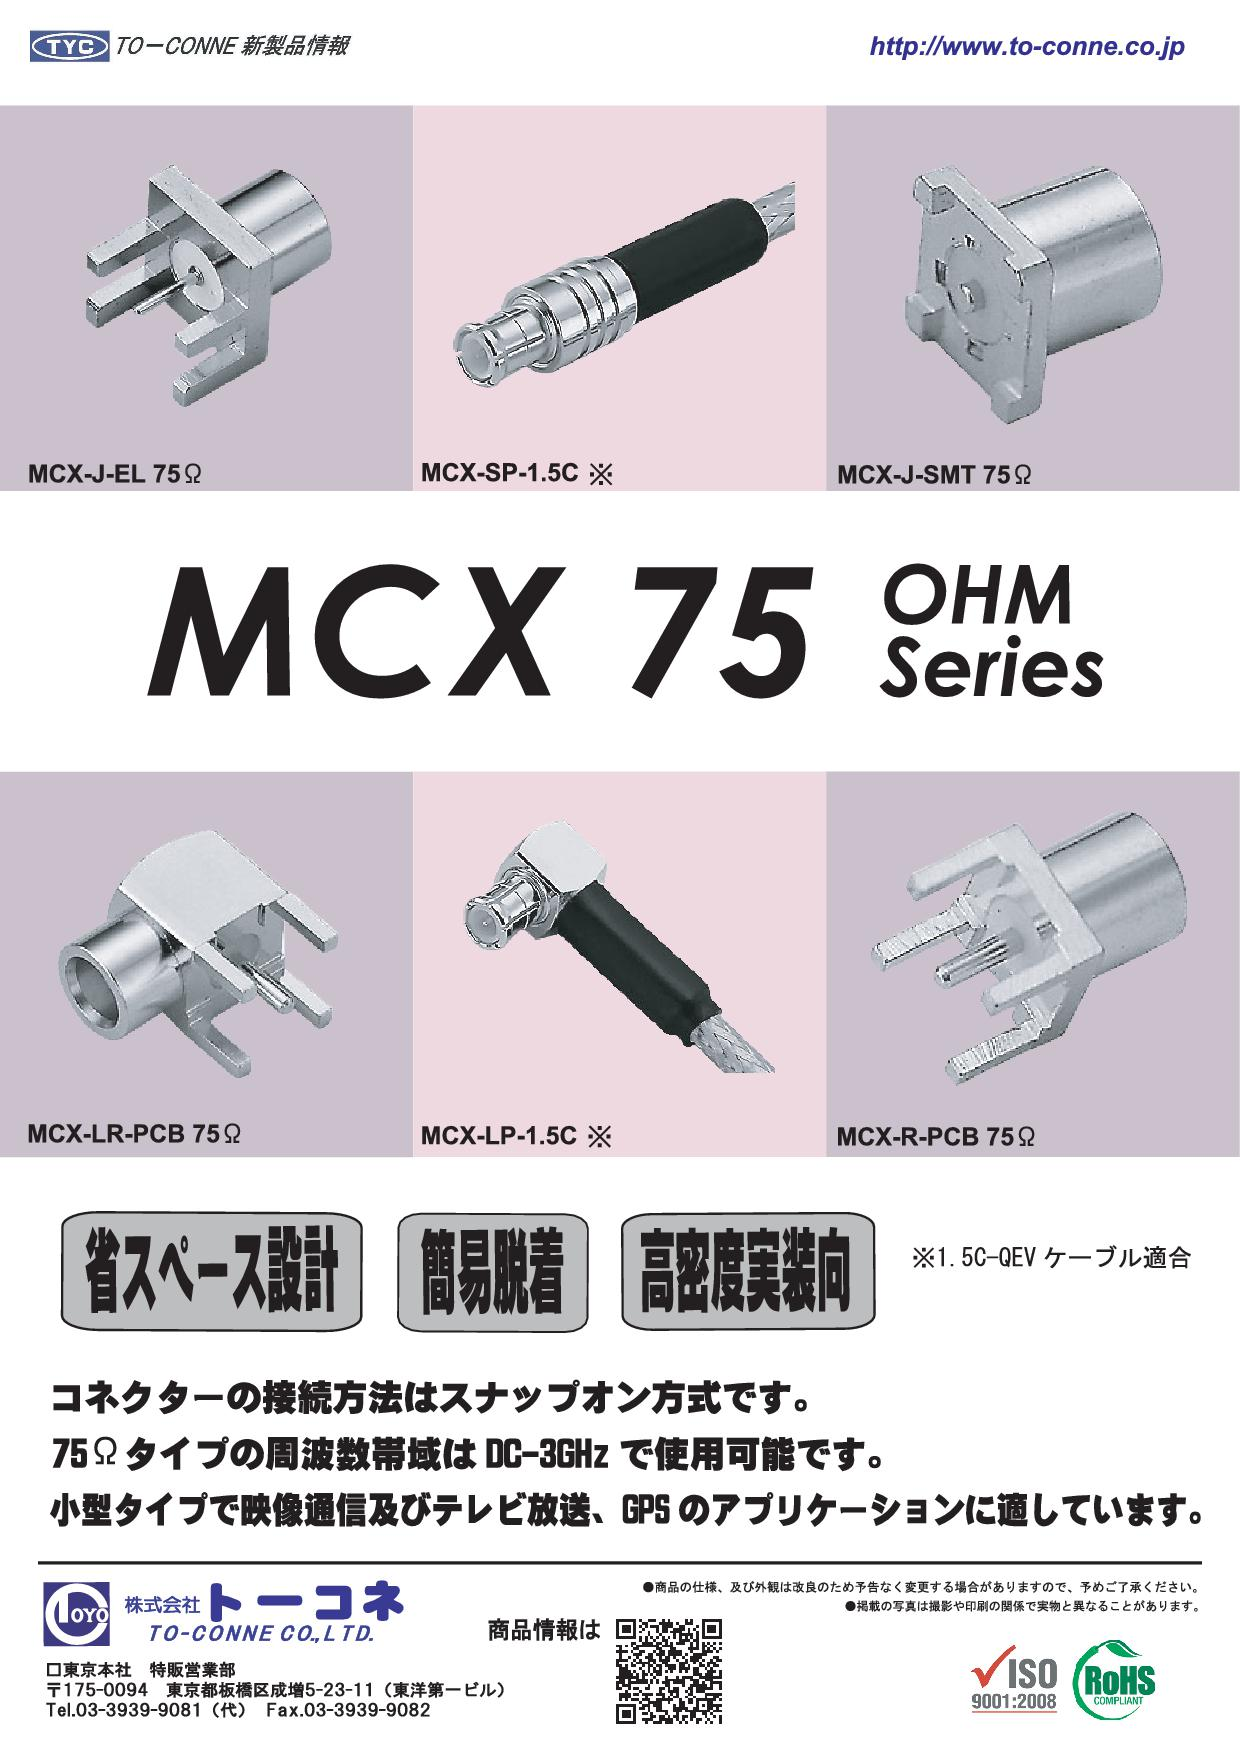 item_news_TO-CONNE_MCX_connecter_2015_01_13